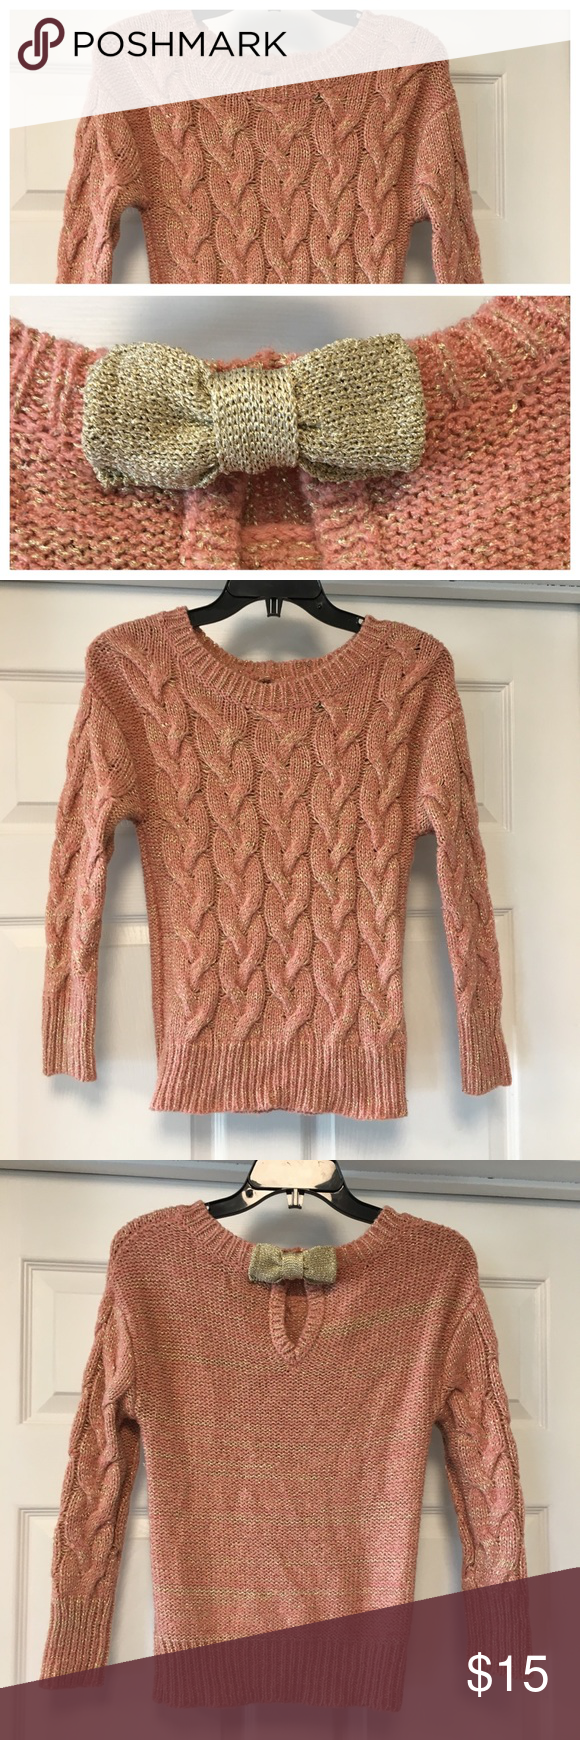 Peach and Gold Cable Knit Bow Sweater